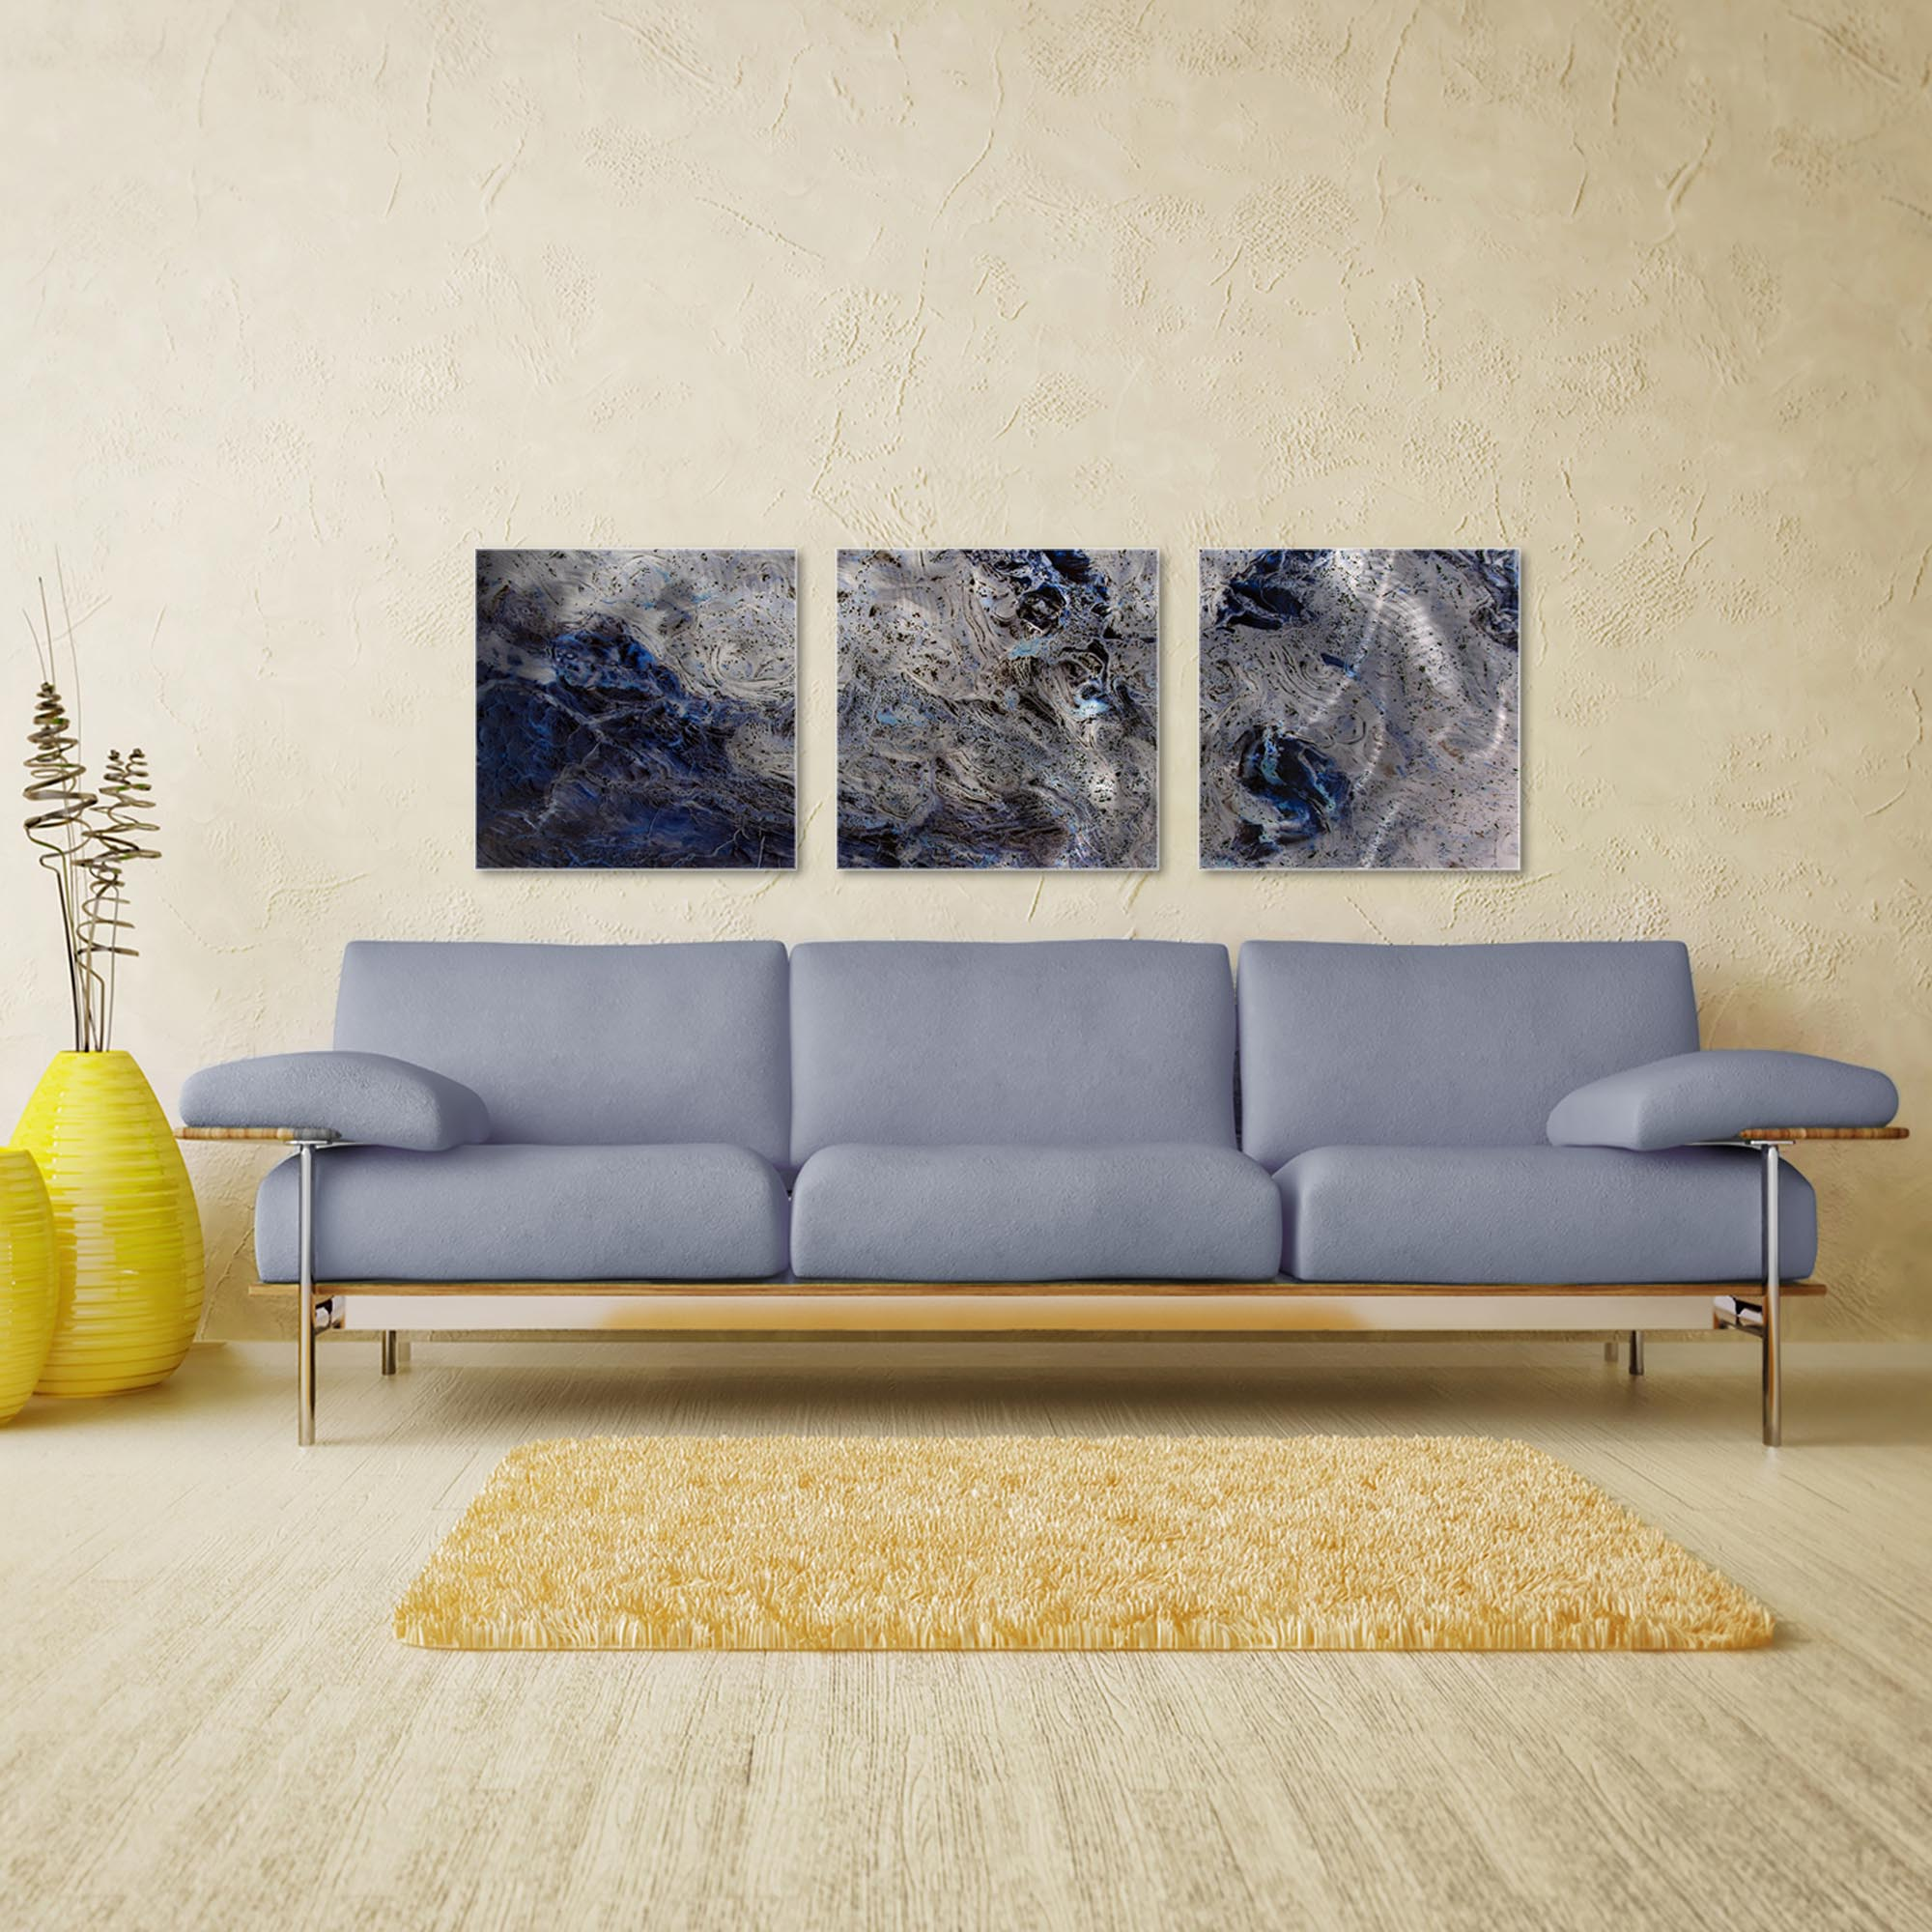 Storm Blue Triptych Large 70x22in. Metal or Acrylic Abstract Decor - Image 3